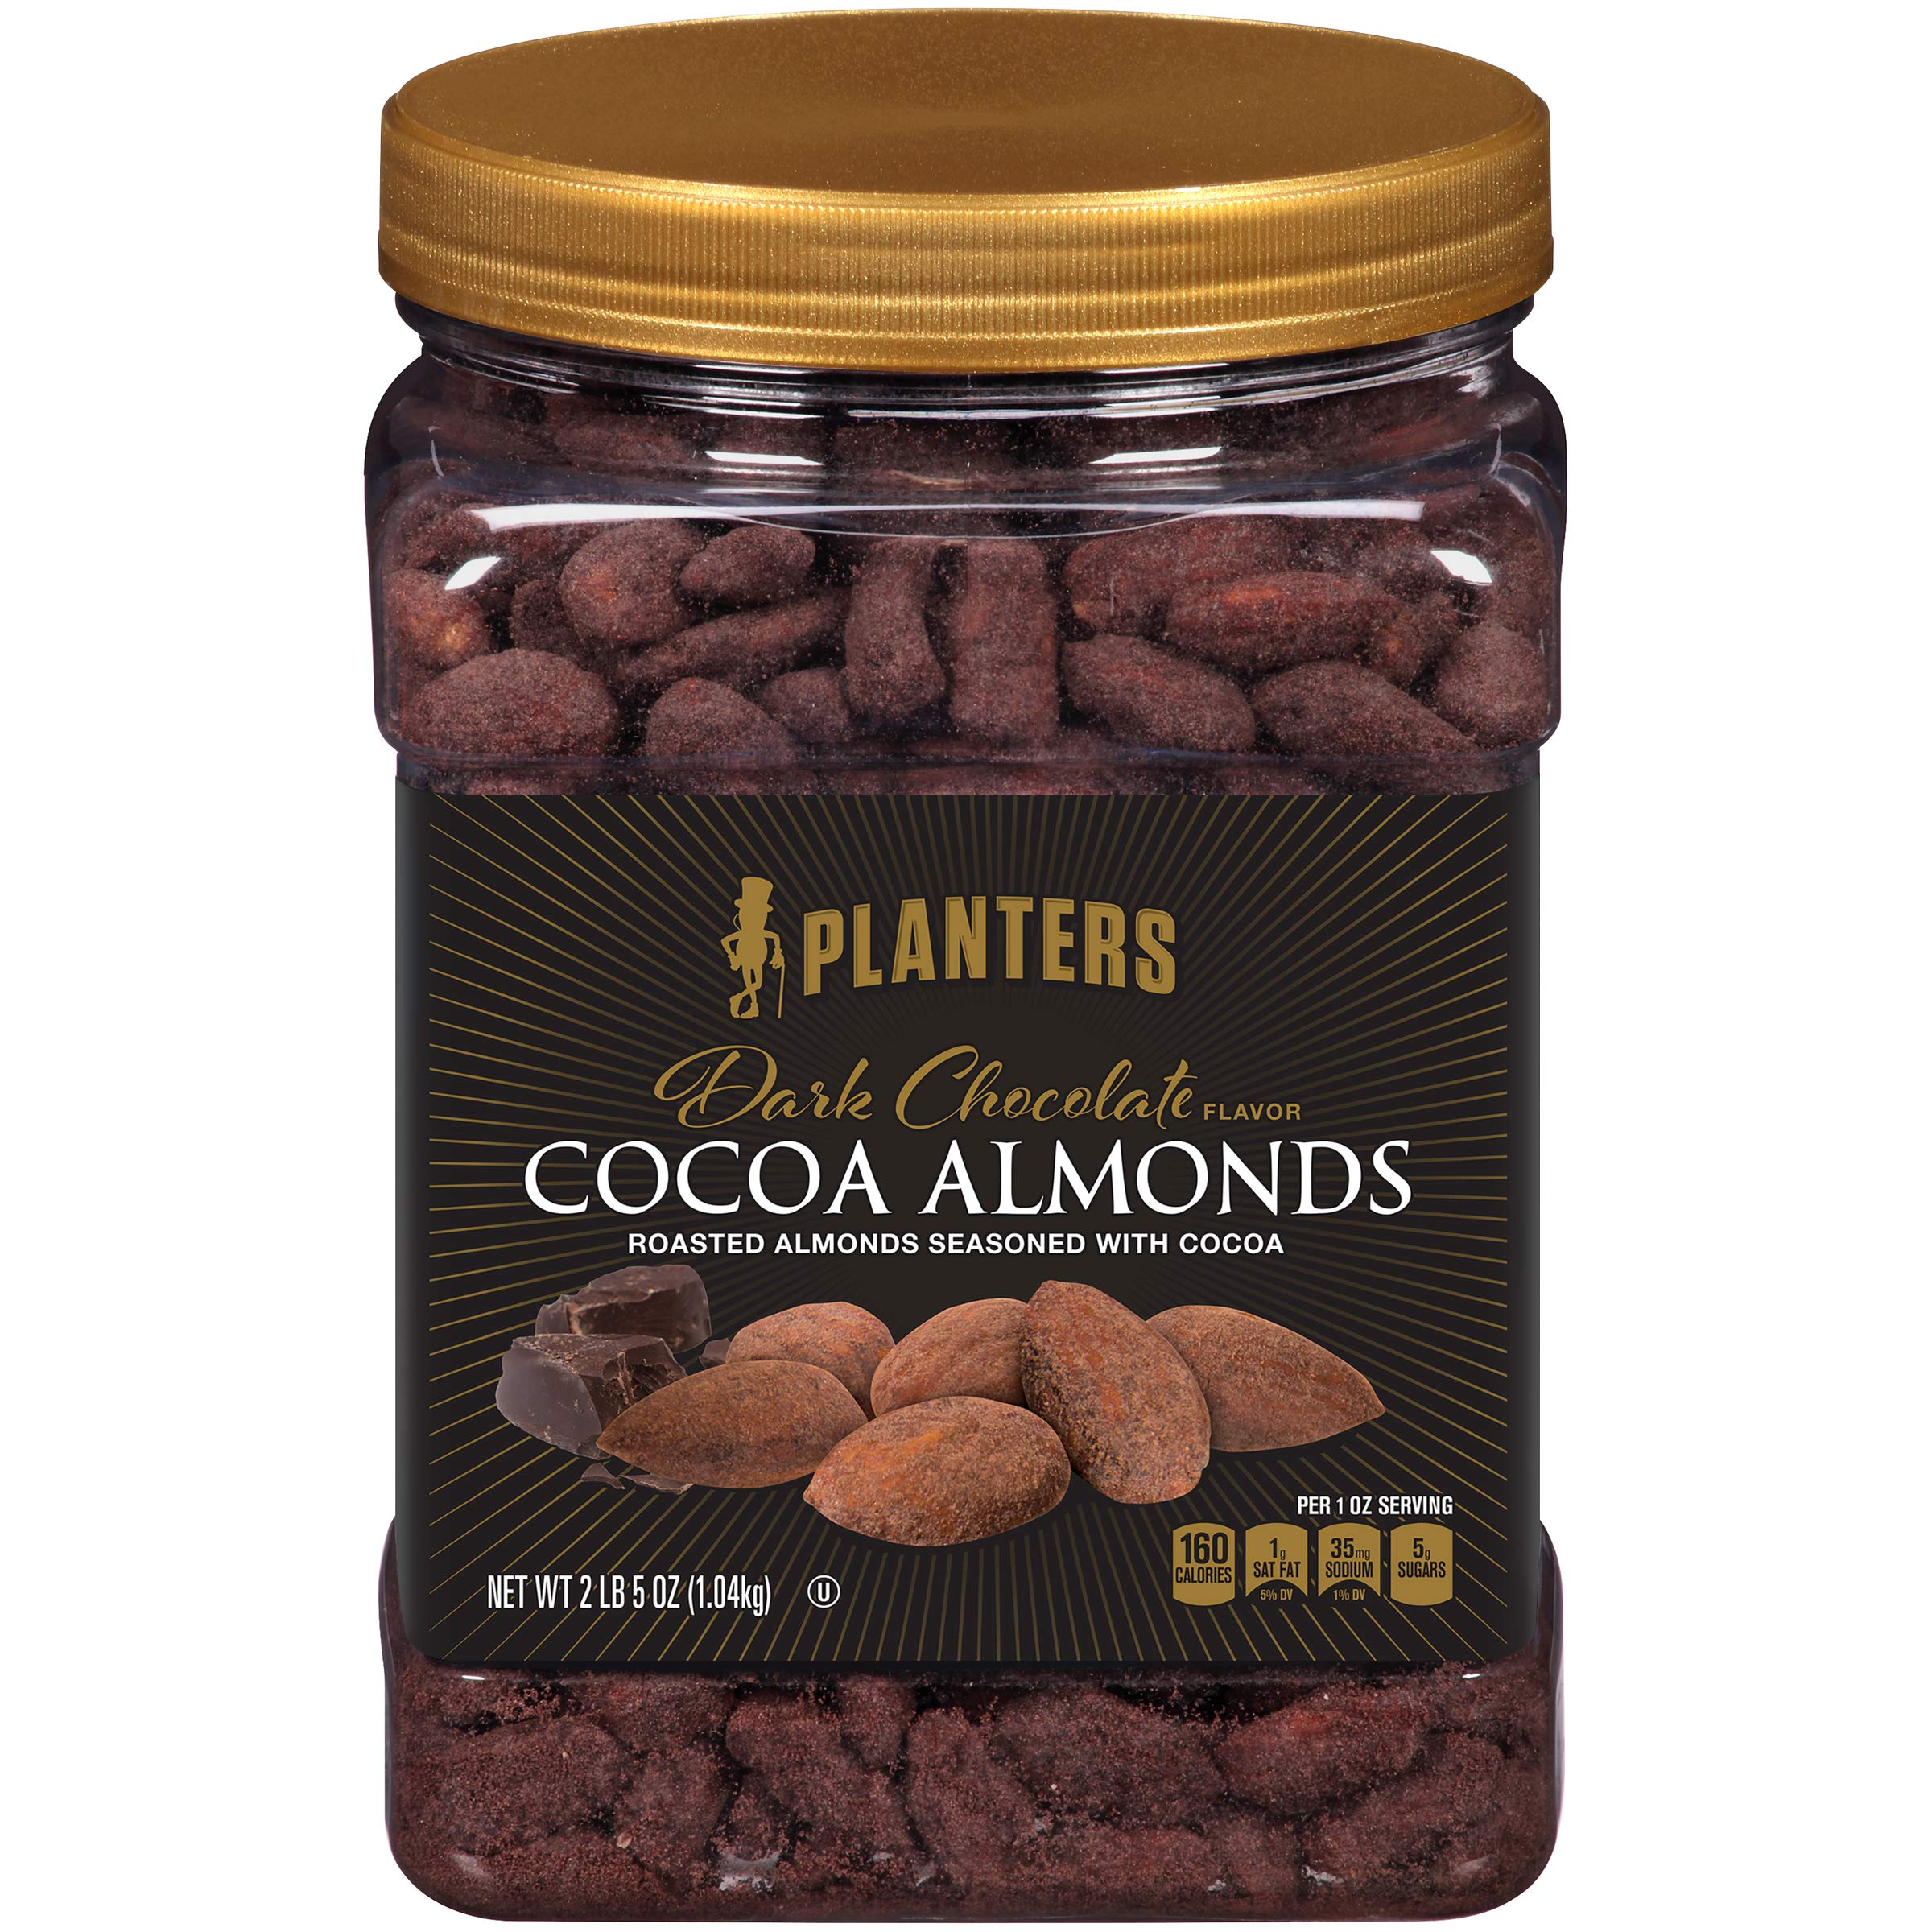 Planters Dark Chocolate Flavor Cocoa Almonds (37 oz Canister) by Planters